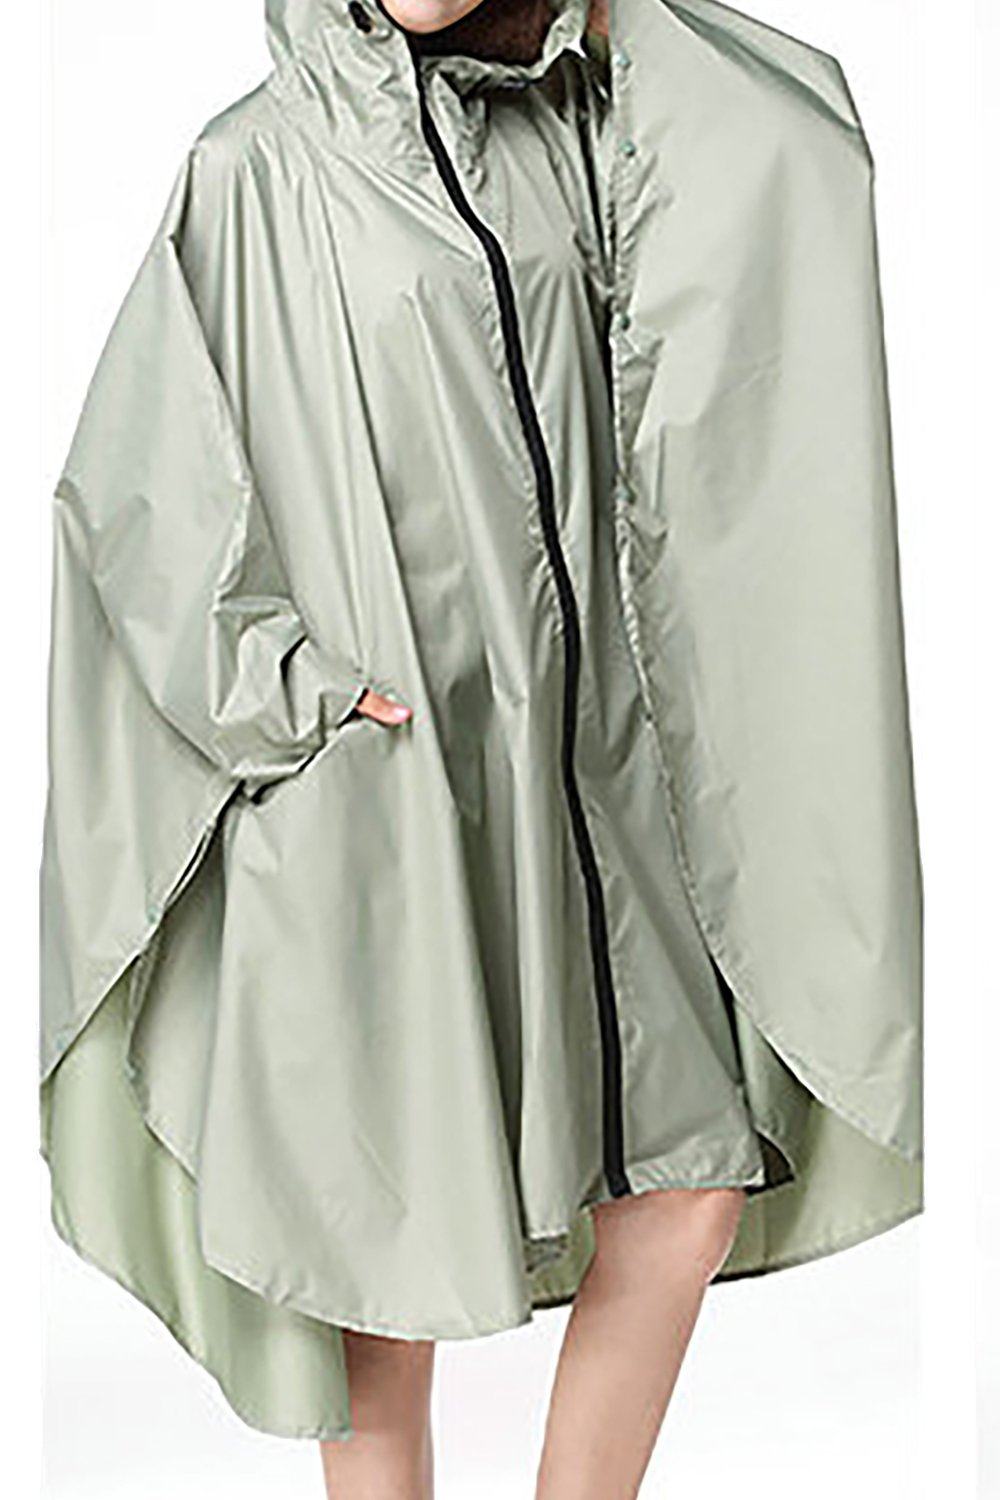 QZUnique Lightweight Outdoor Hooded Waterproof Packable Rain Poncho Jacket Coat Raincoat with Zipper for Adults by QZUnique (Image #3)